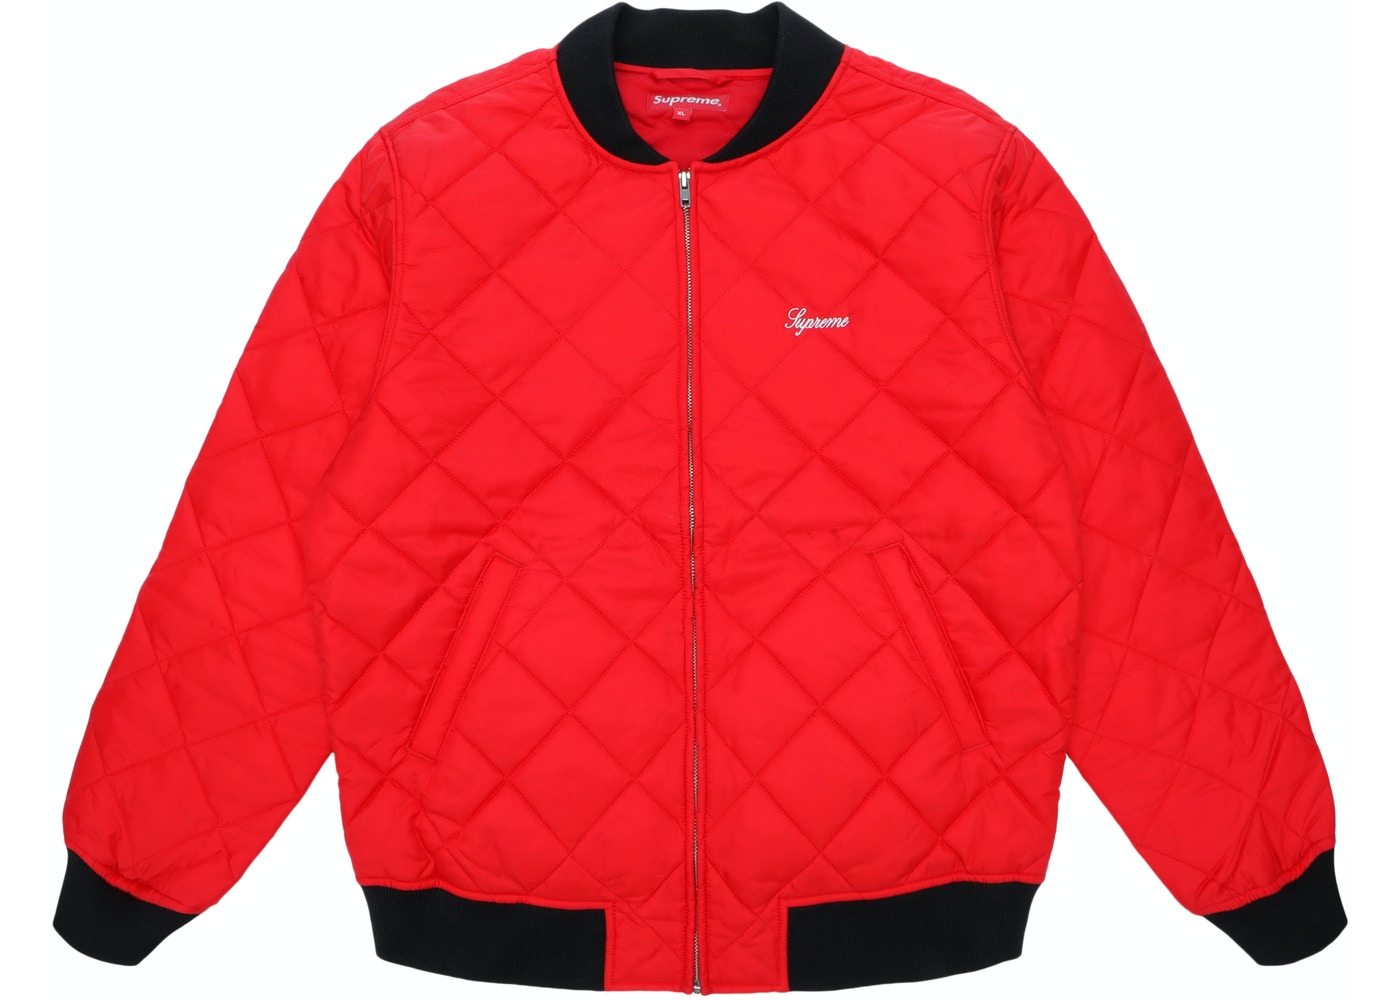 Bedwelming Supreme Sequin Patch Quilted Bomber Jacket Red - SS16 @OV53